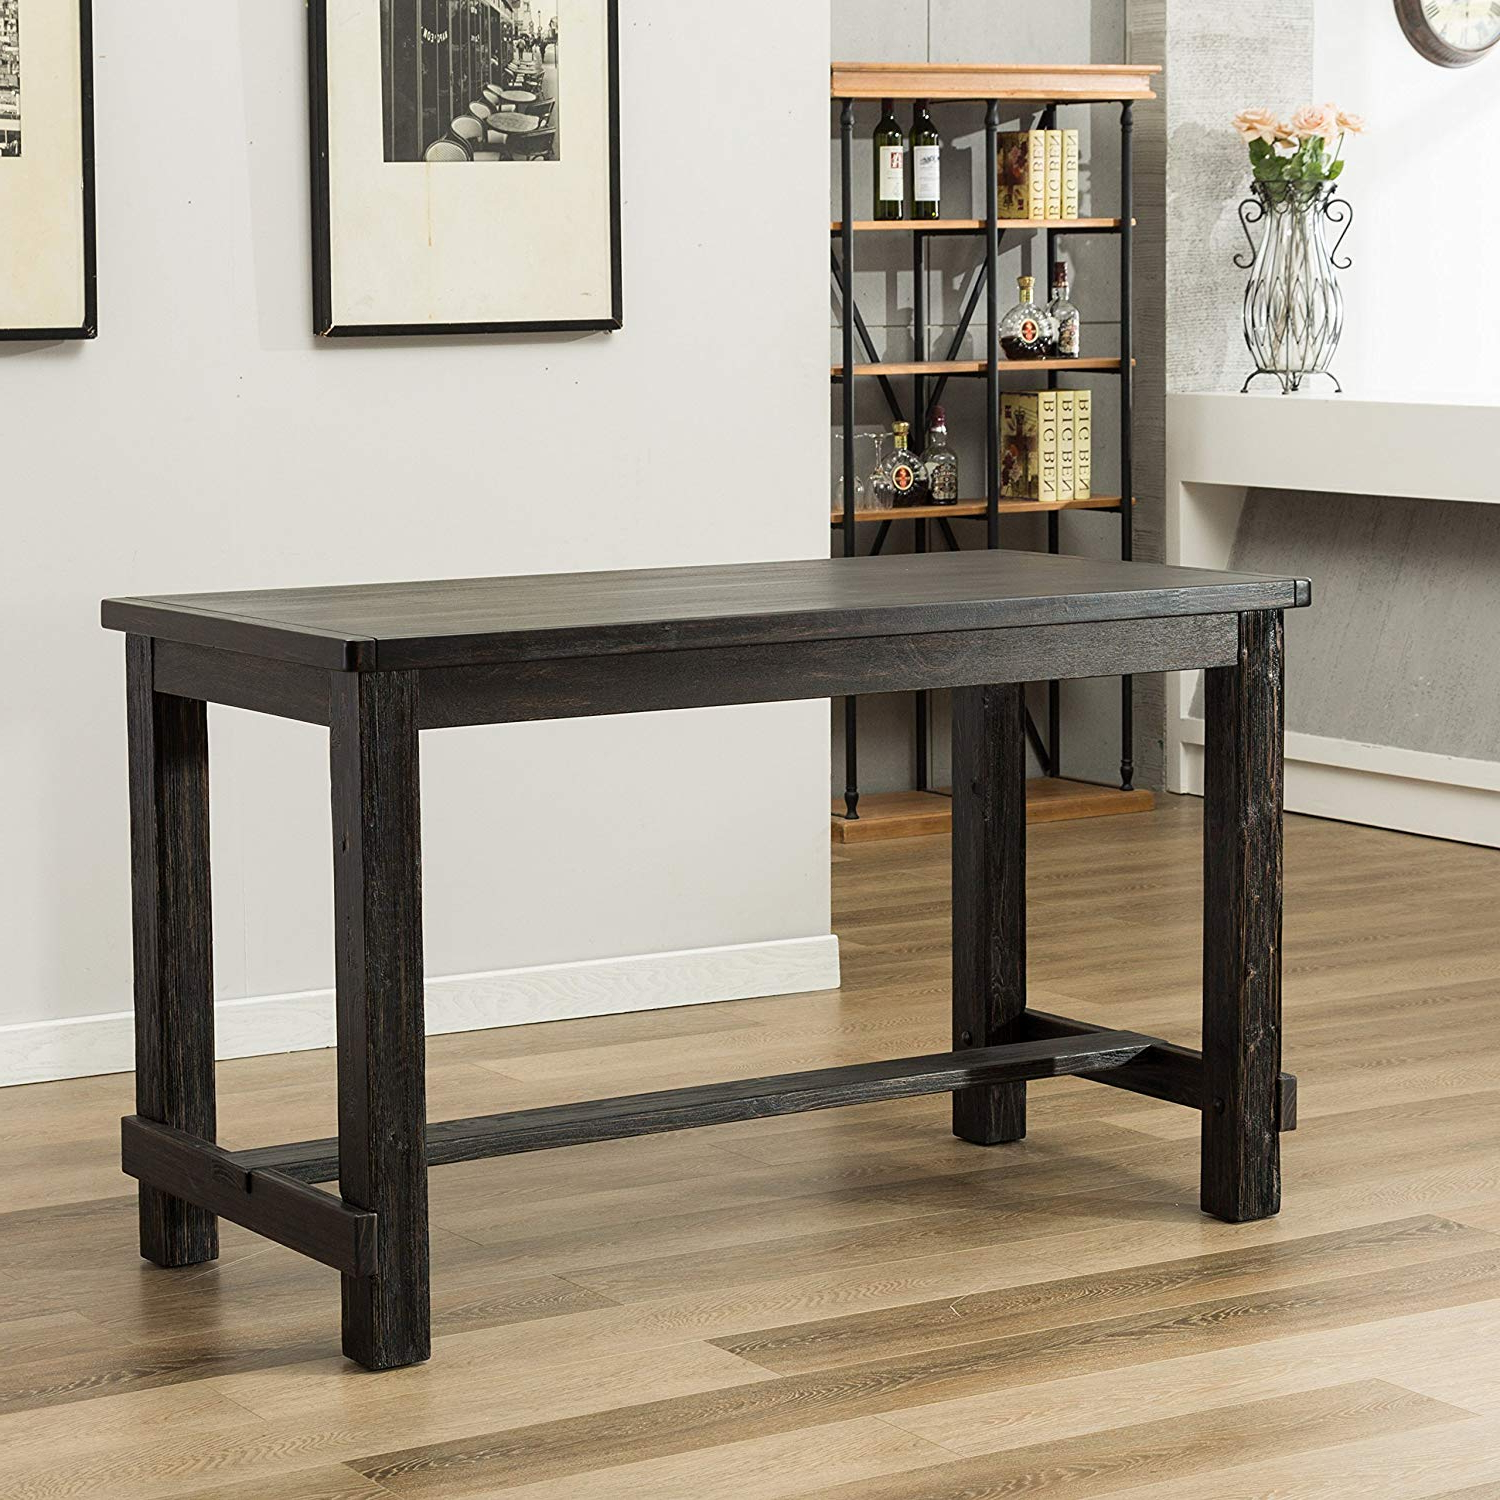 Well Liked Amazon – Roundhill Furniture Pt185Bk Lotusville Antique Inside Antique Black Wood Kitchen Dining Tables (View 25 of 25)